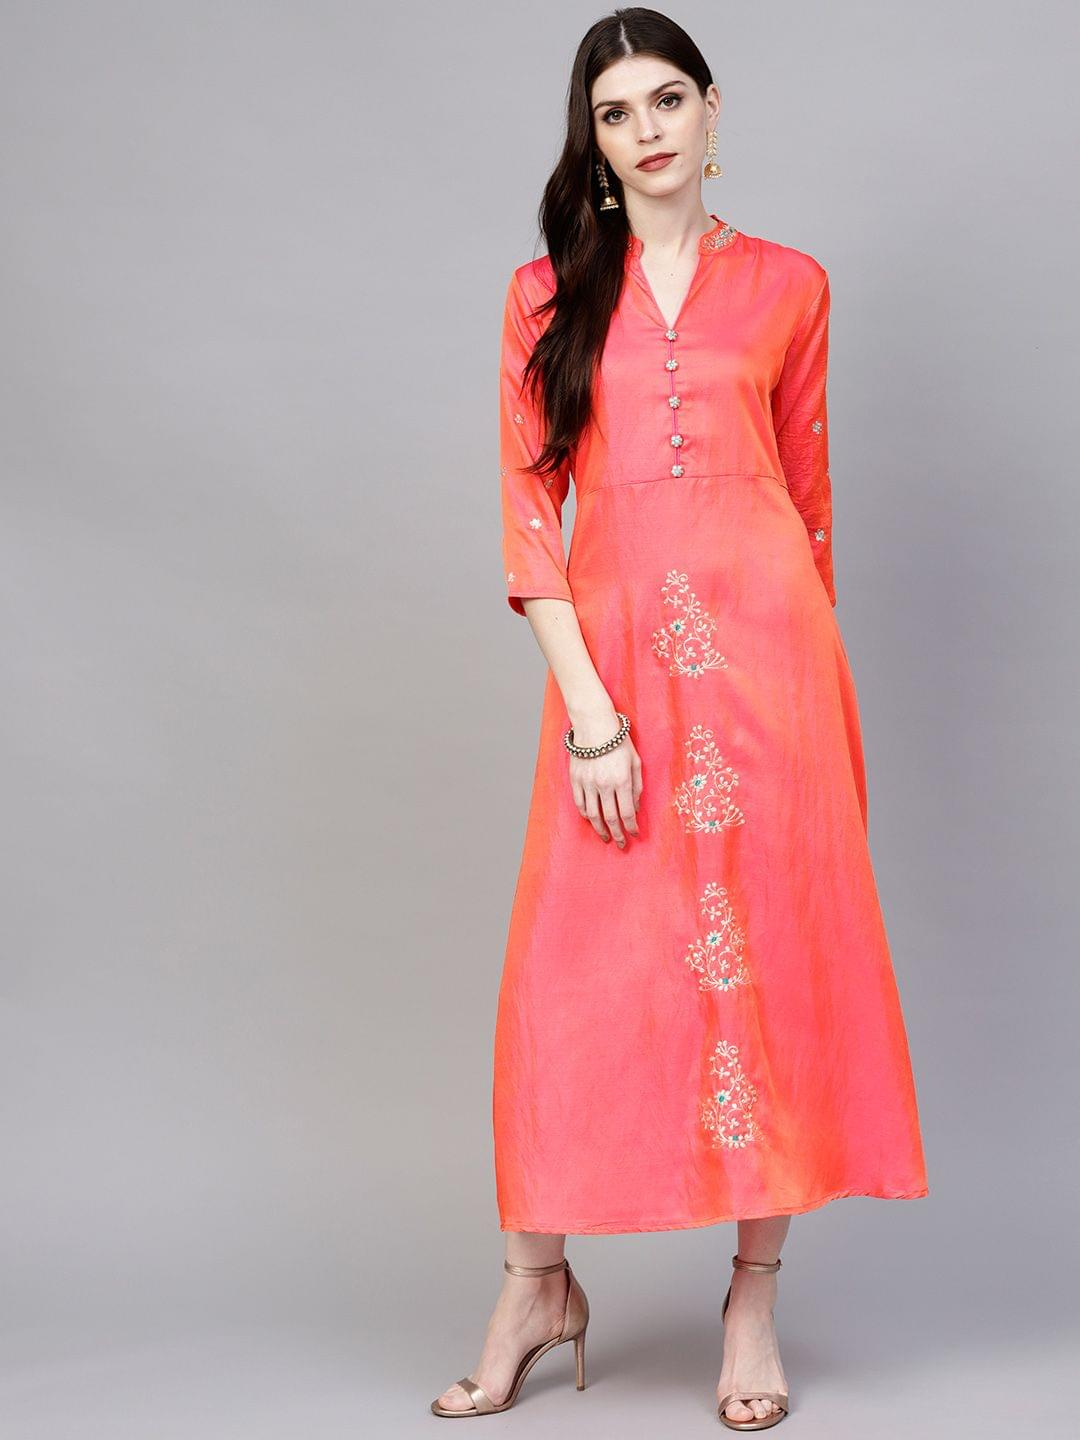 Women Orange & Pink Dual-Toned Maxi Dress with Embroidered Detail